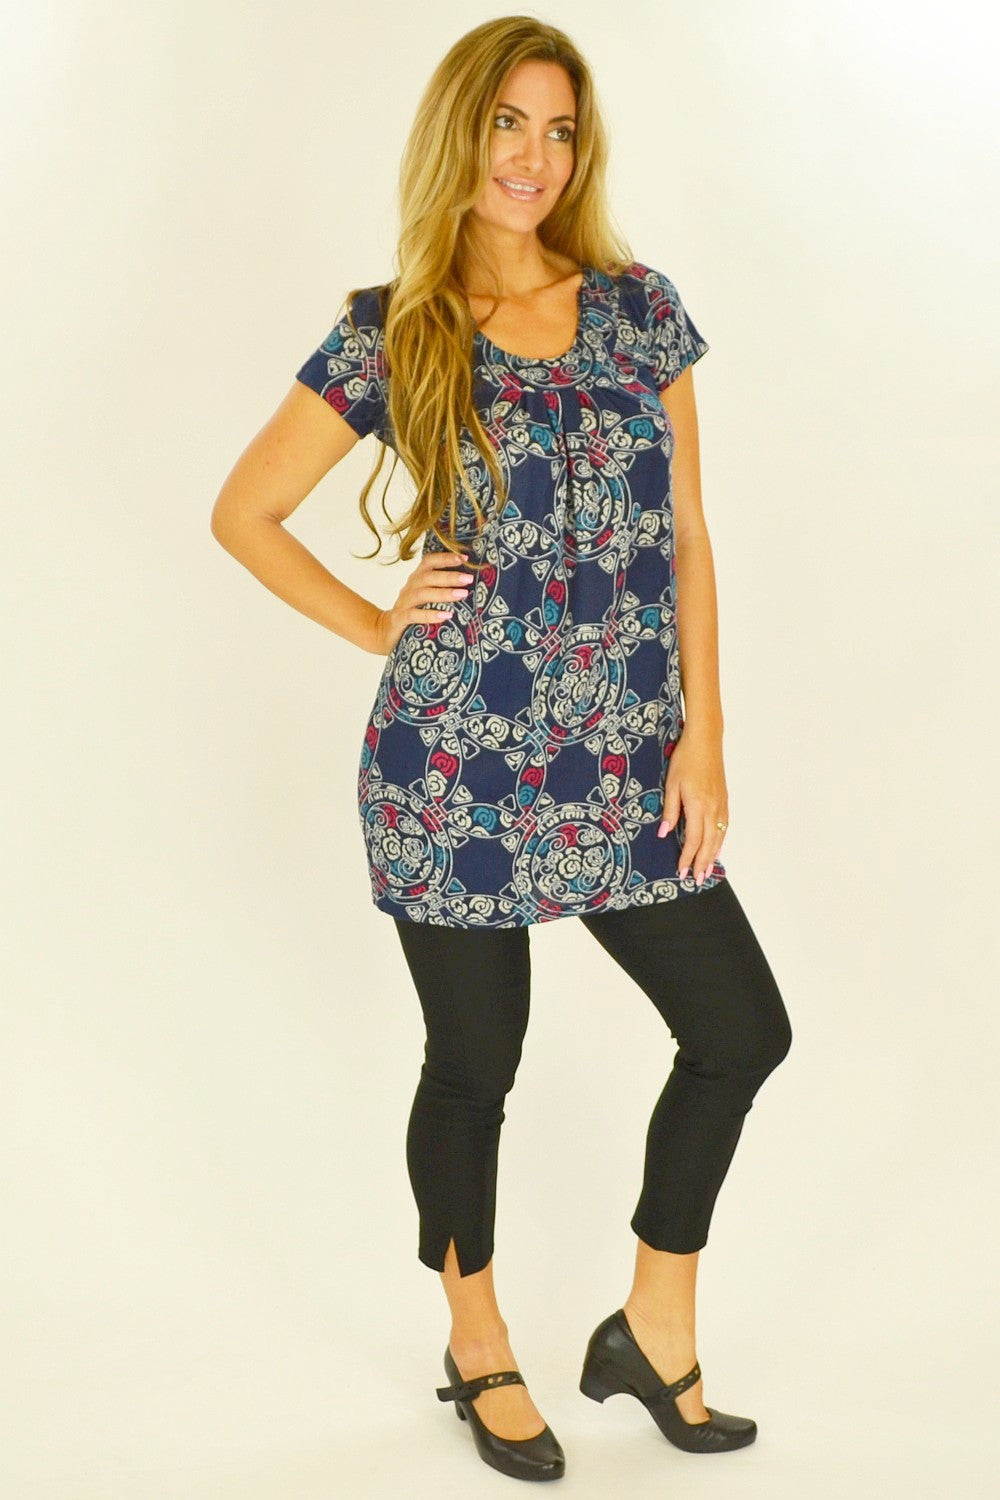 Jocelyn Tunic - at I Love Tunics @ www.ilovetunics.com = Number One! Tunics Destination